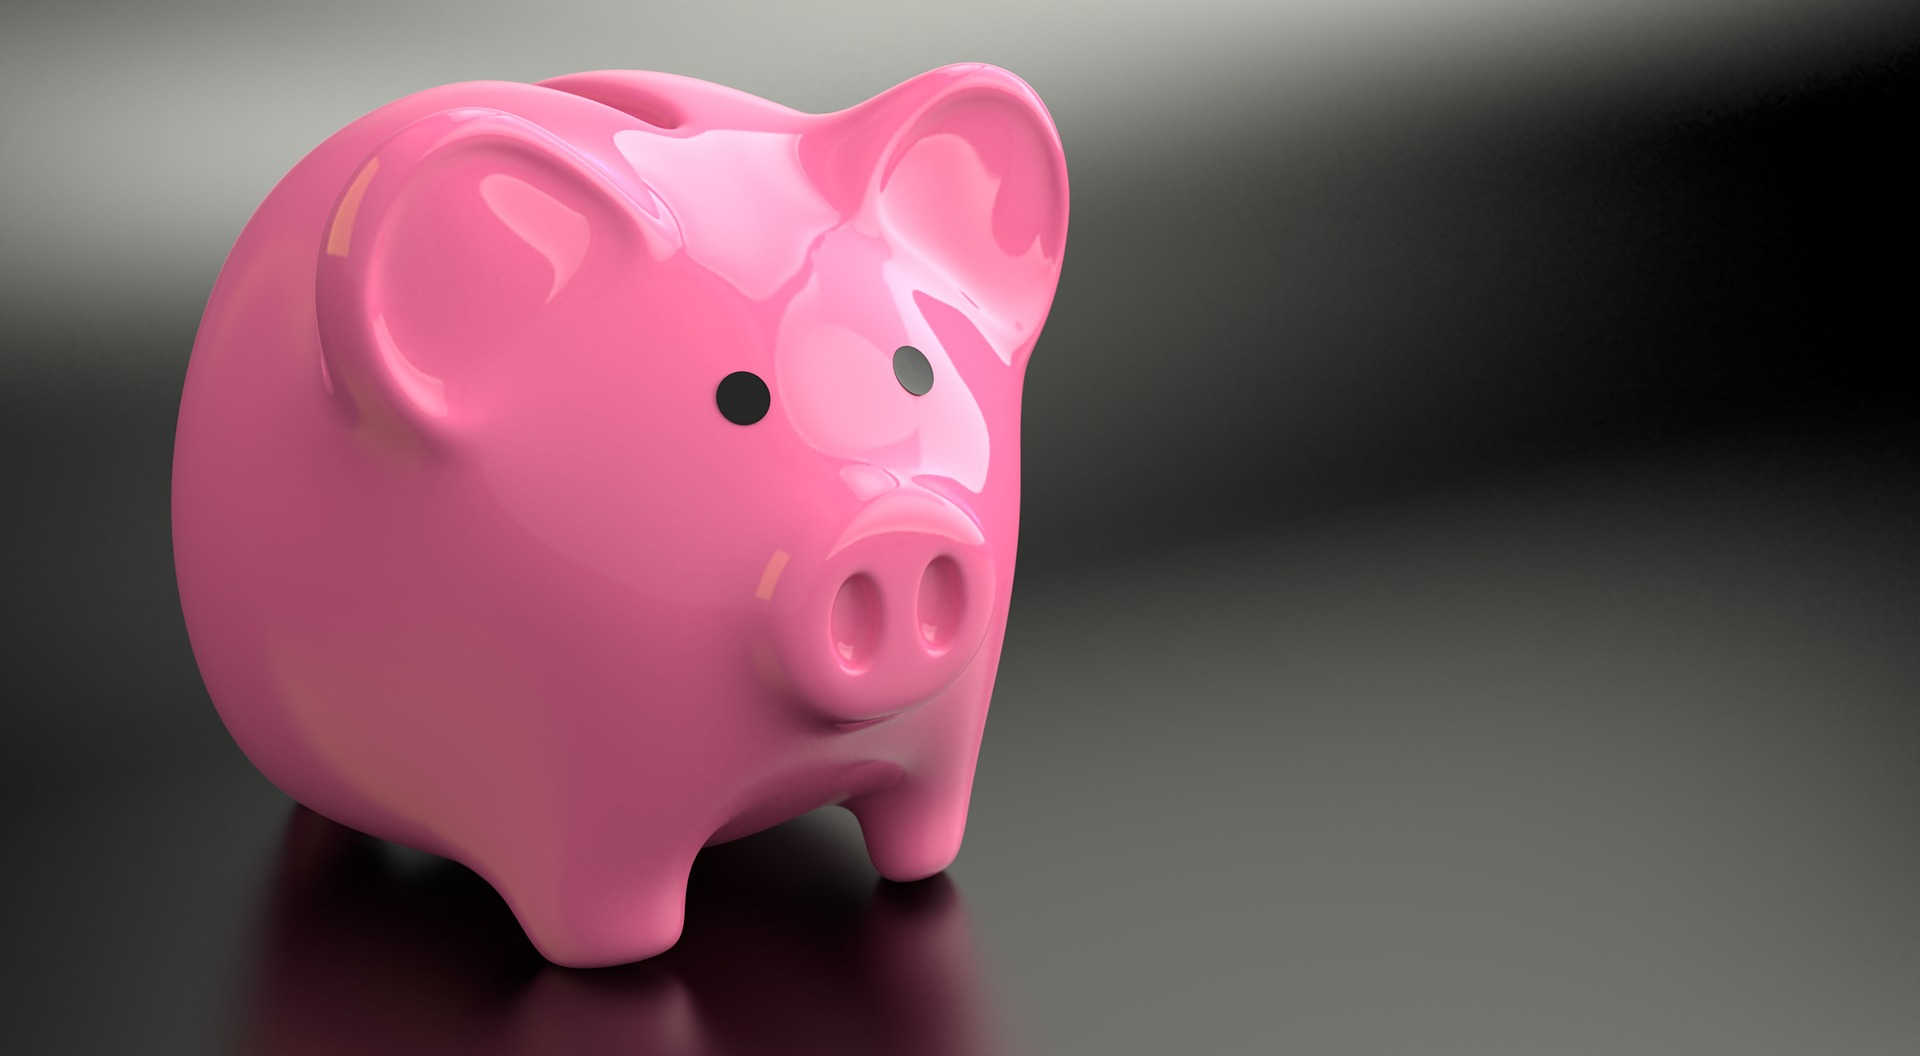 13 simple tips for saving money while paying off debt